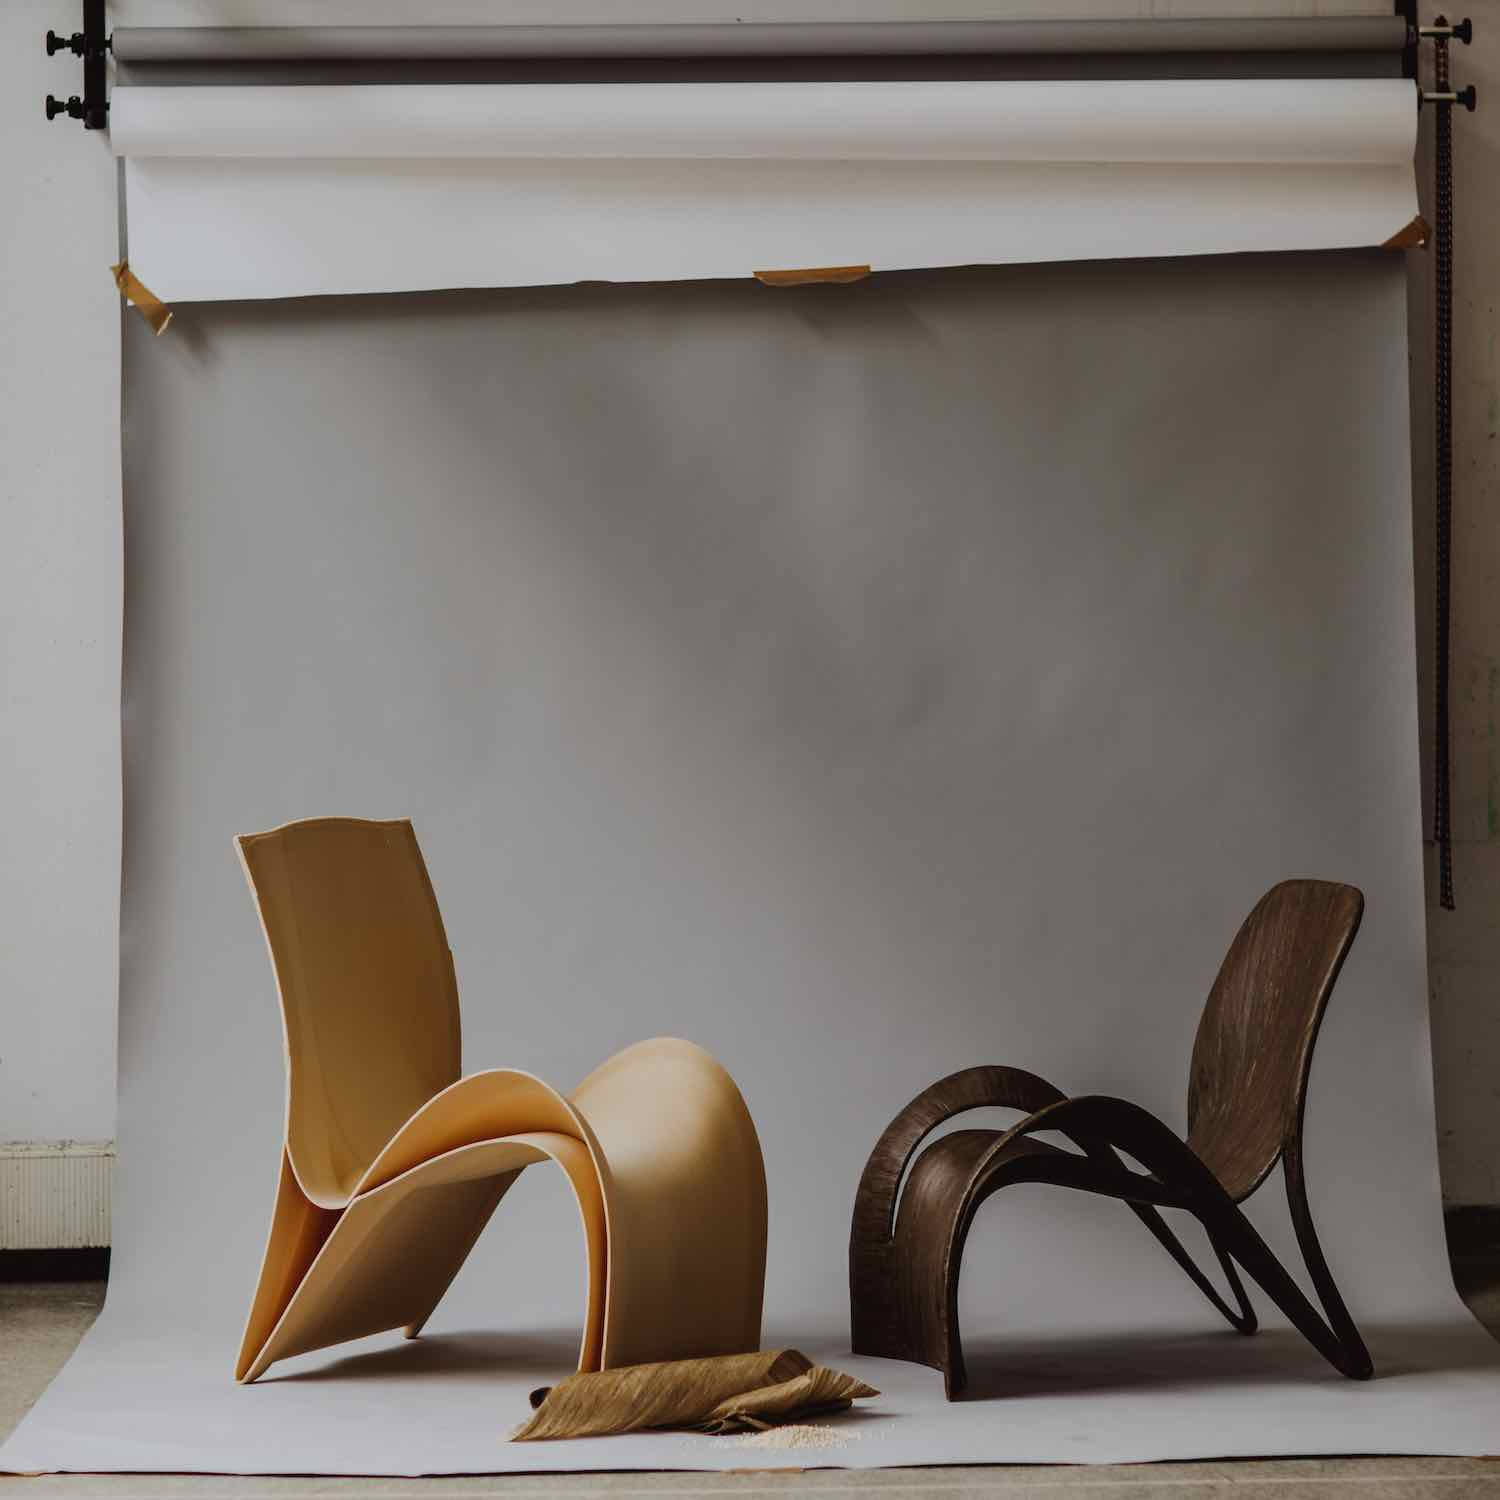 Chairs by Fleen Design - Photo by Natalie Greppi.